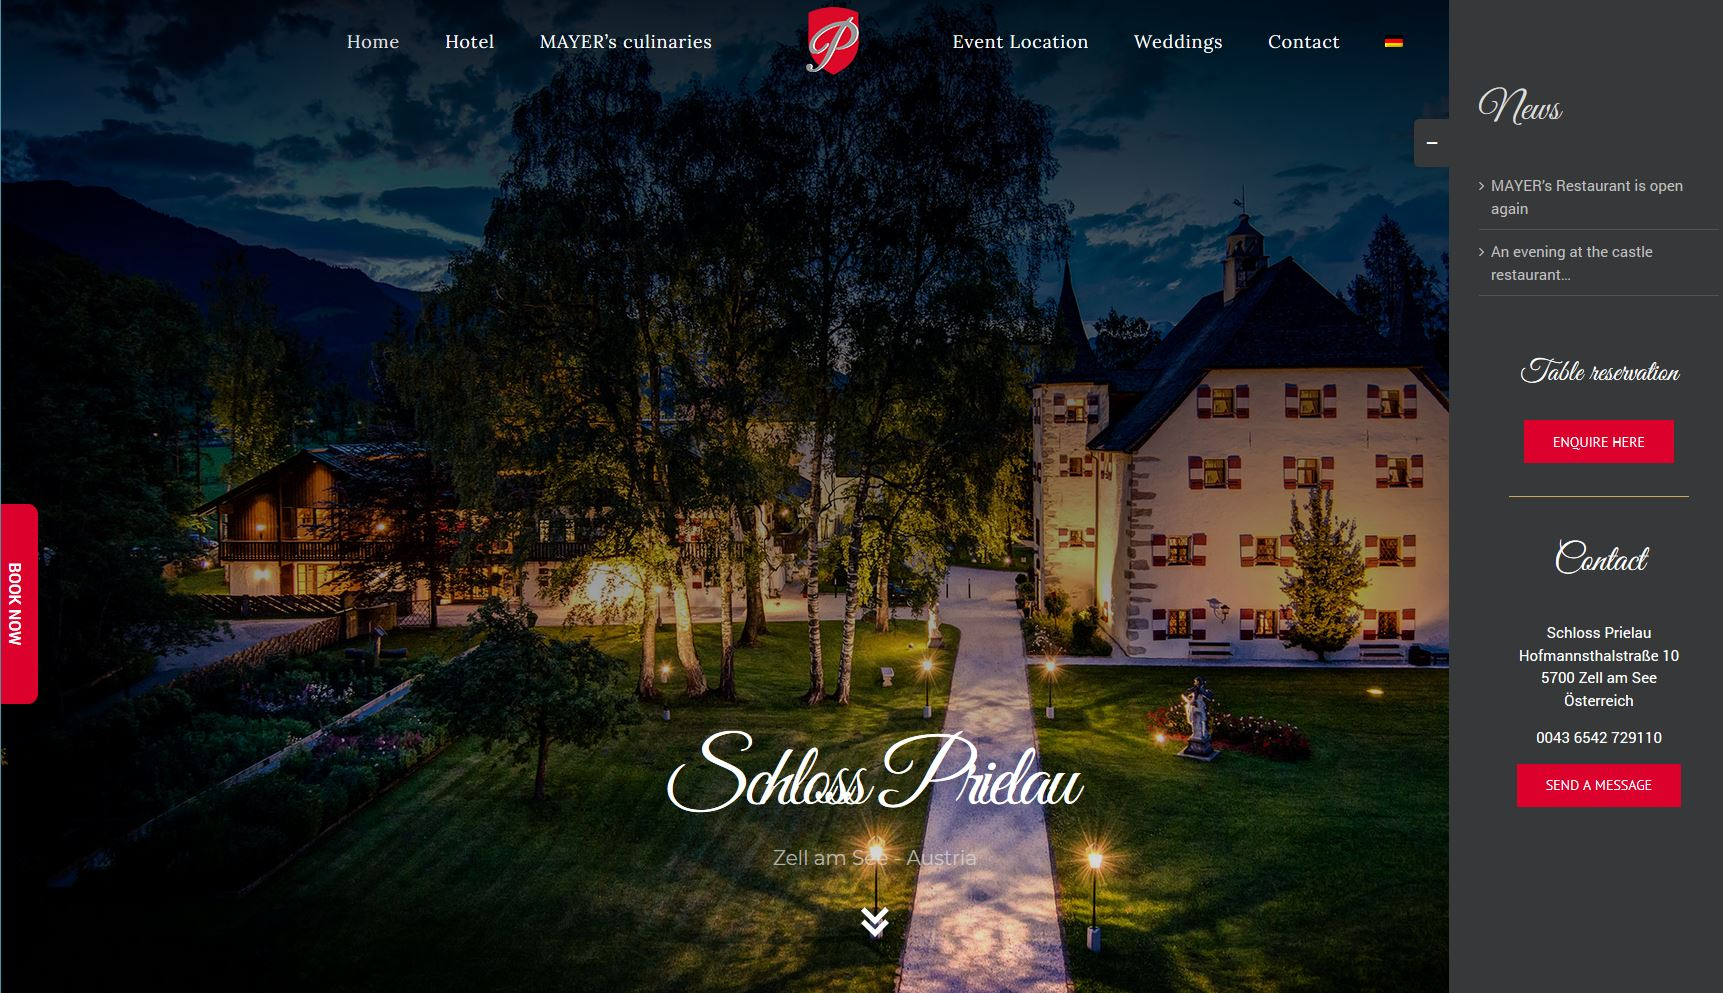 Schloss Pierlau - cultbooking - booking button - direct bookings - book now